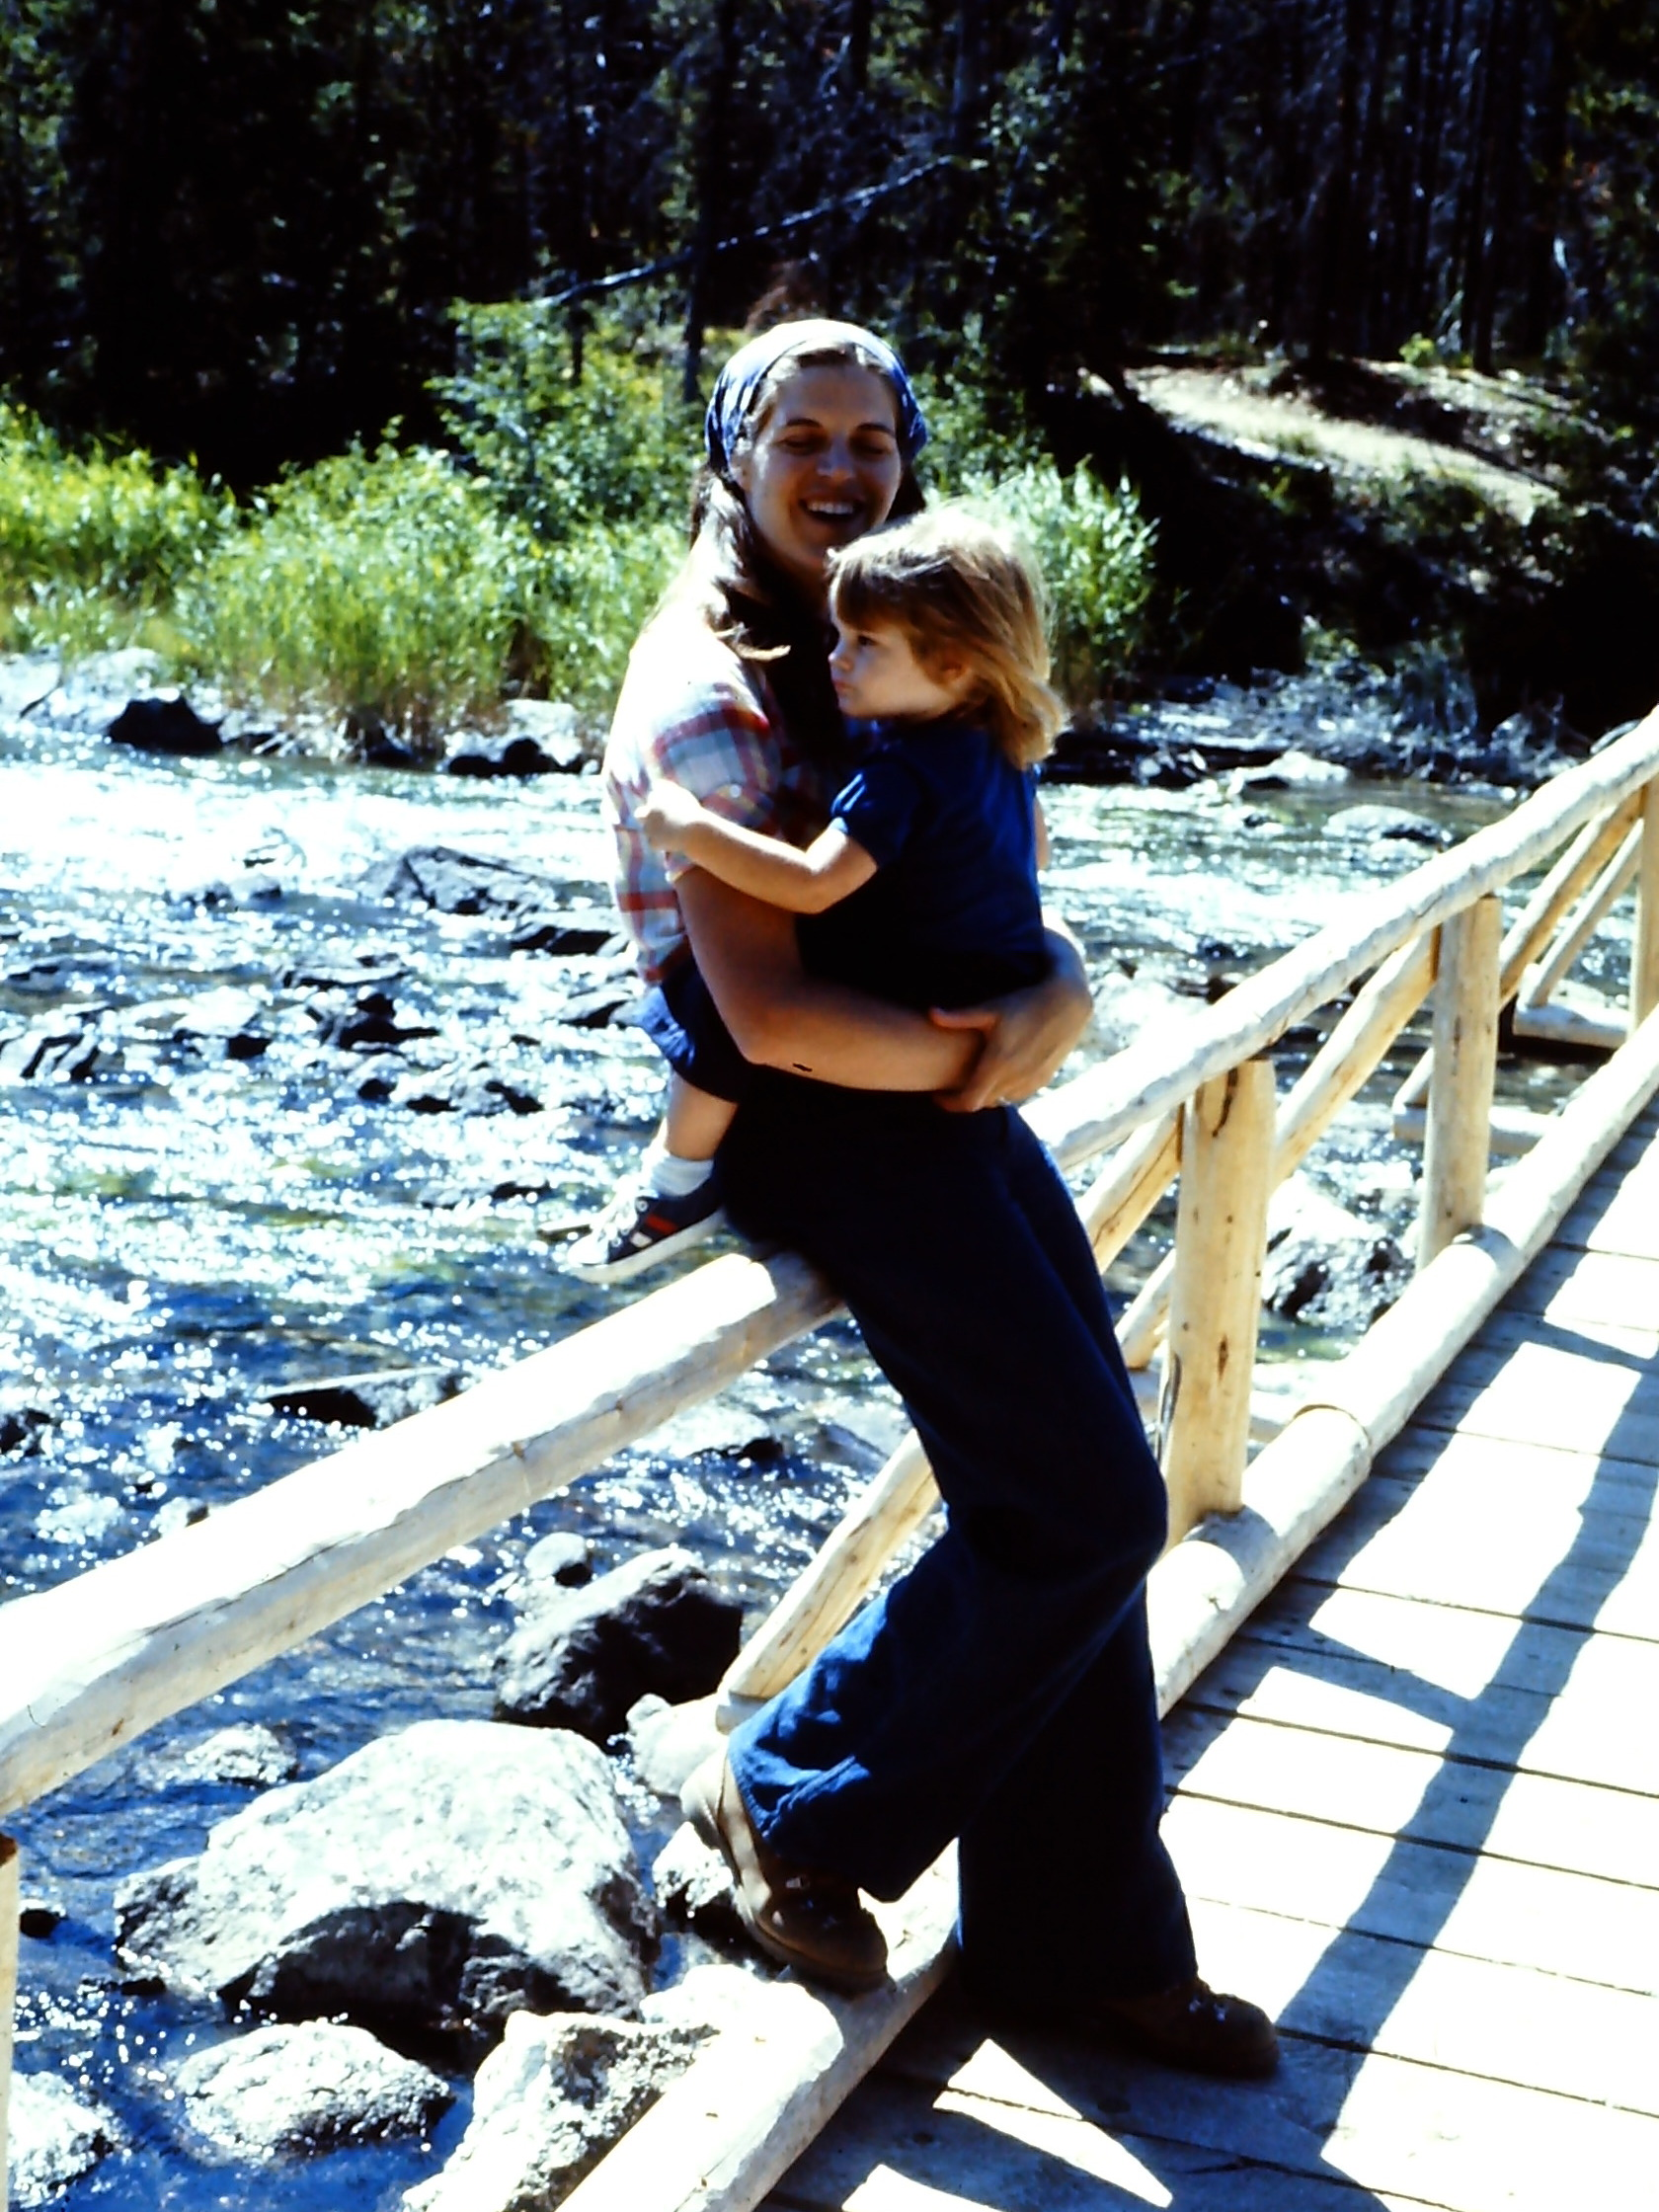 Laurie & Sarah - String Lake area - GTNP - 1977